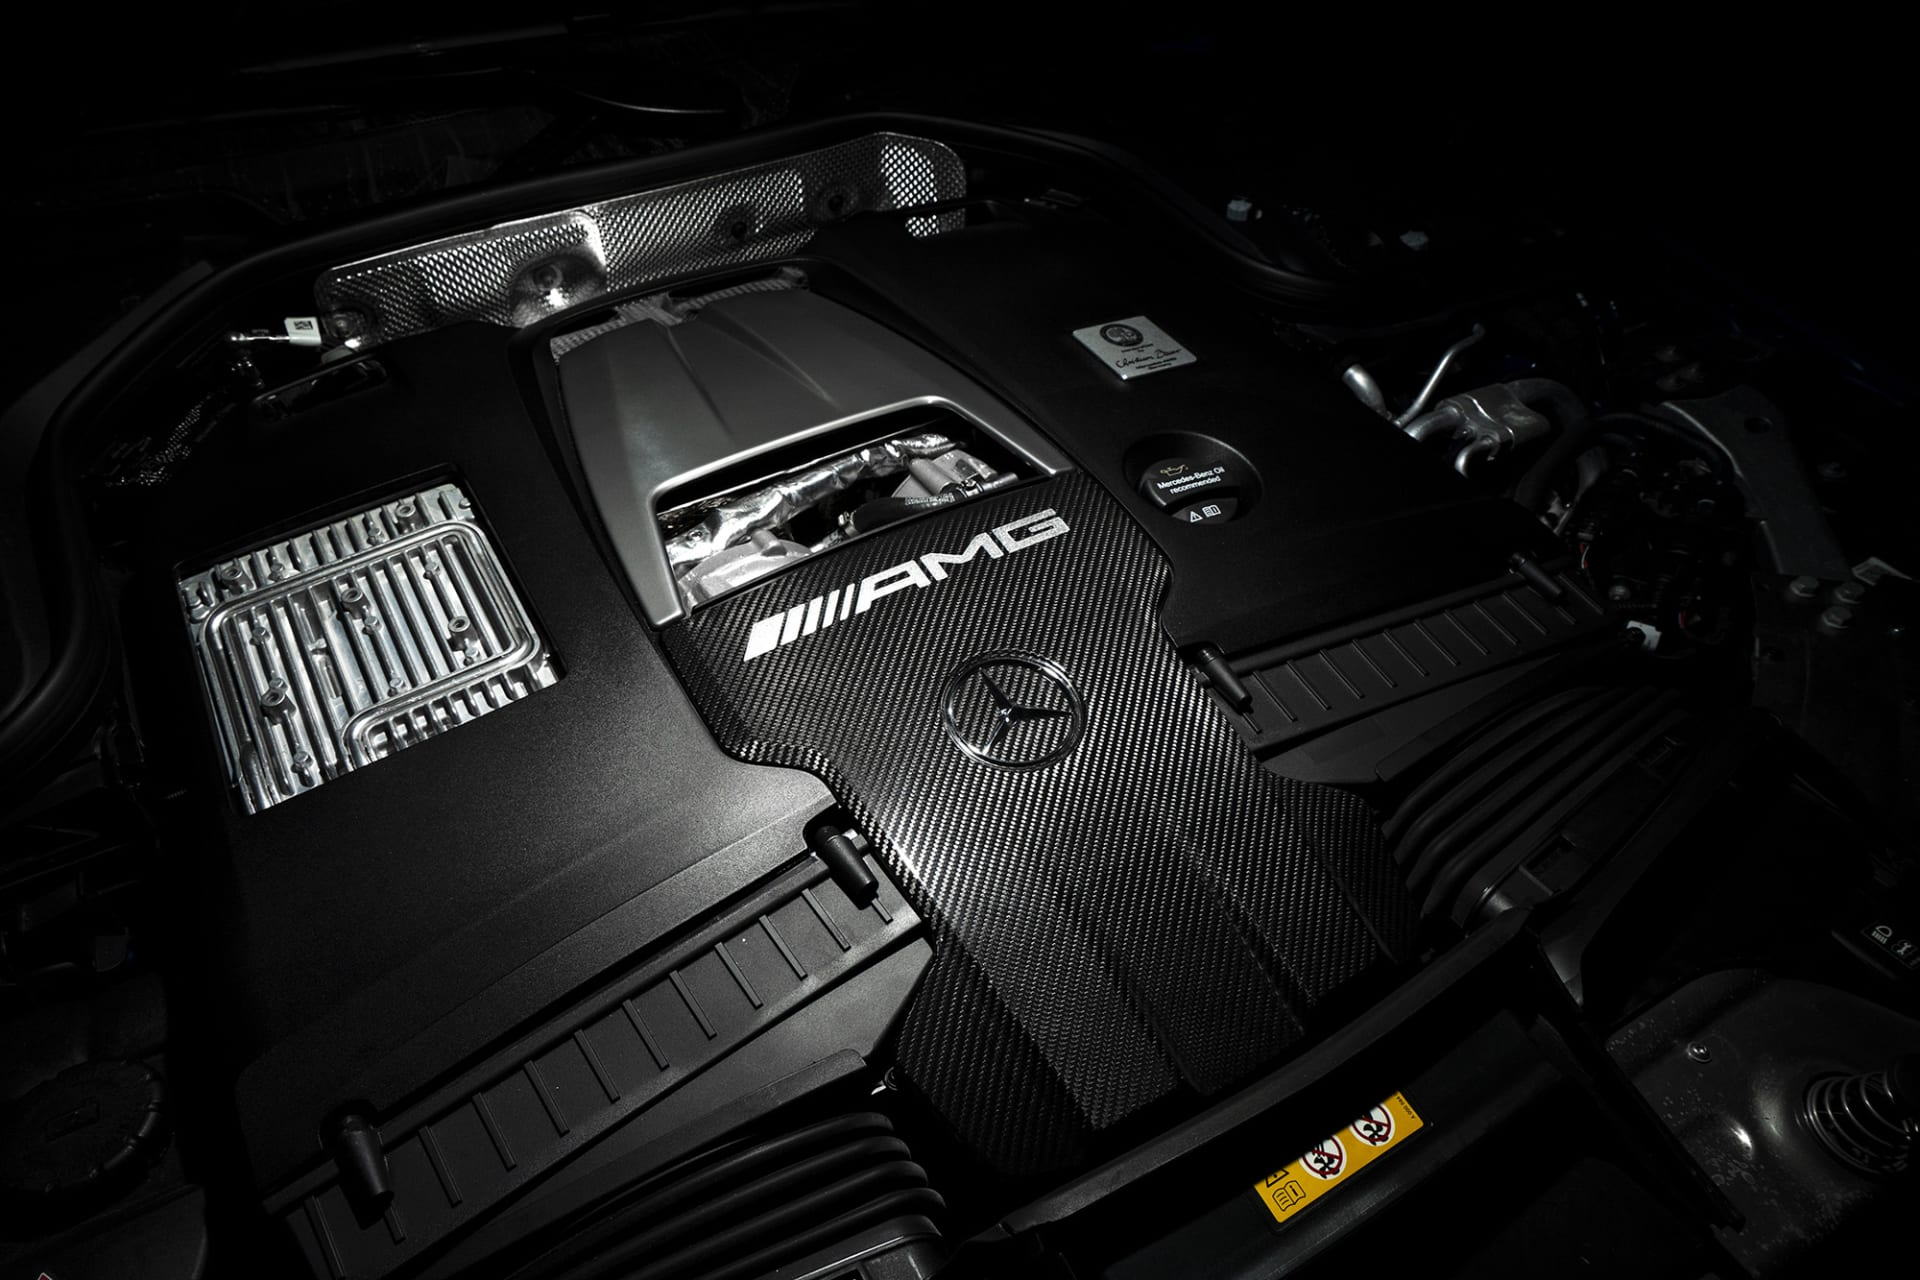 The heart of the AMG GT63s is the powerful sounding 4-liter turbocharged V8 engine of 639 horsepower. Naturally, complete with the plaque from the AMG engineer who built it.